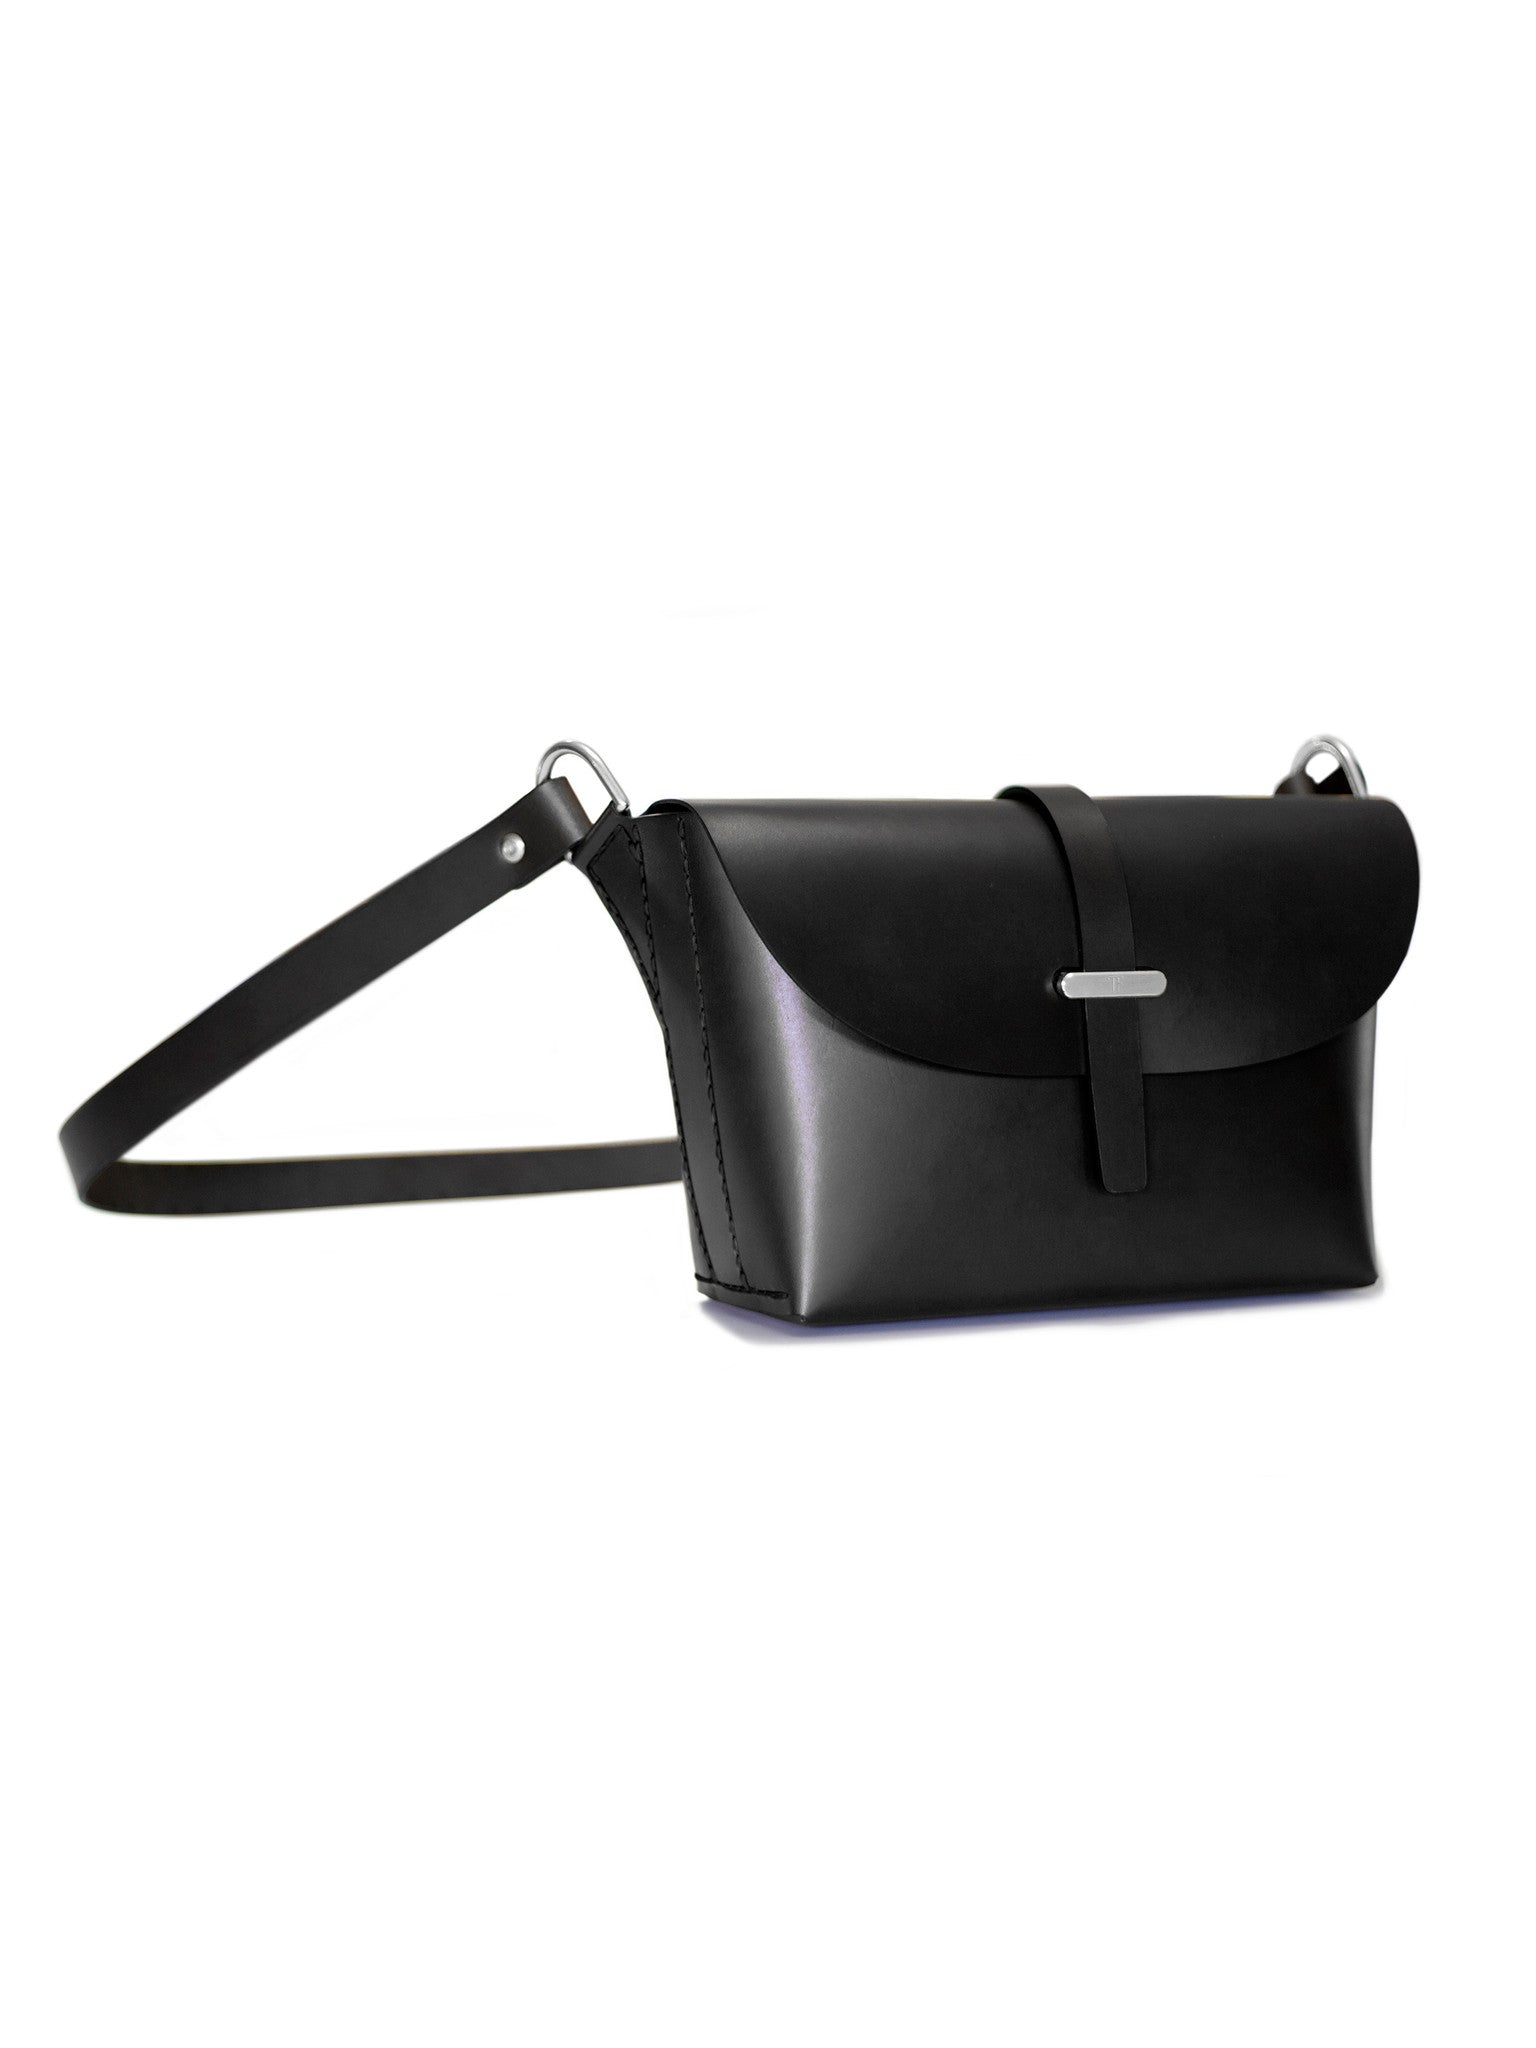 VE x TF Messenger Bag